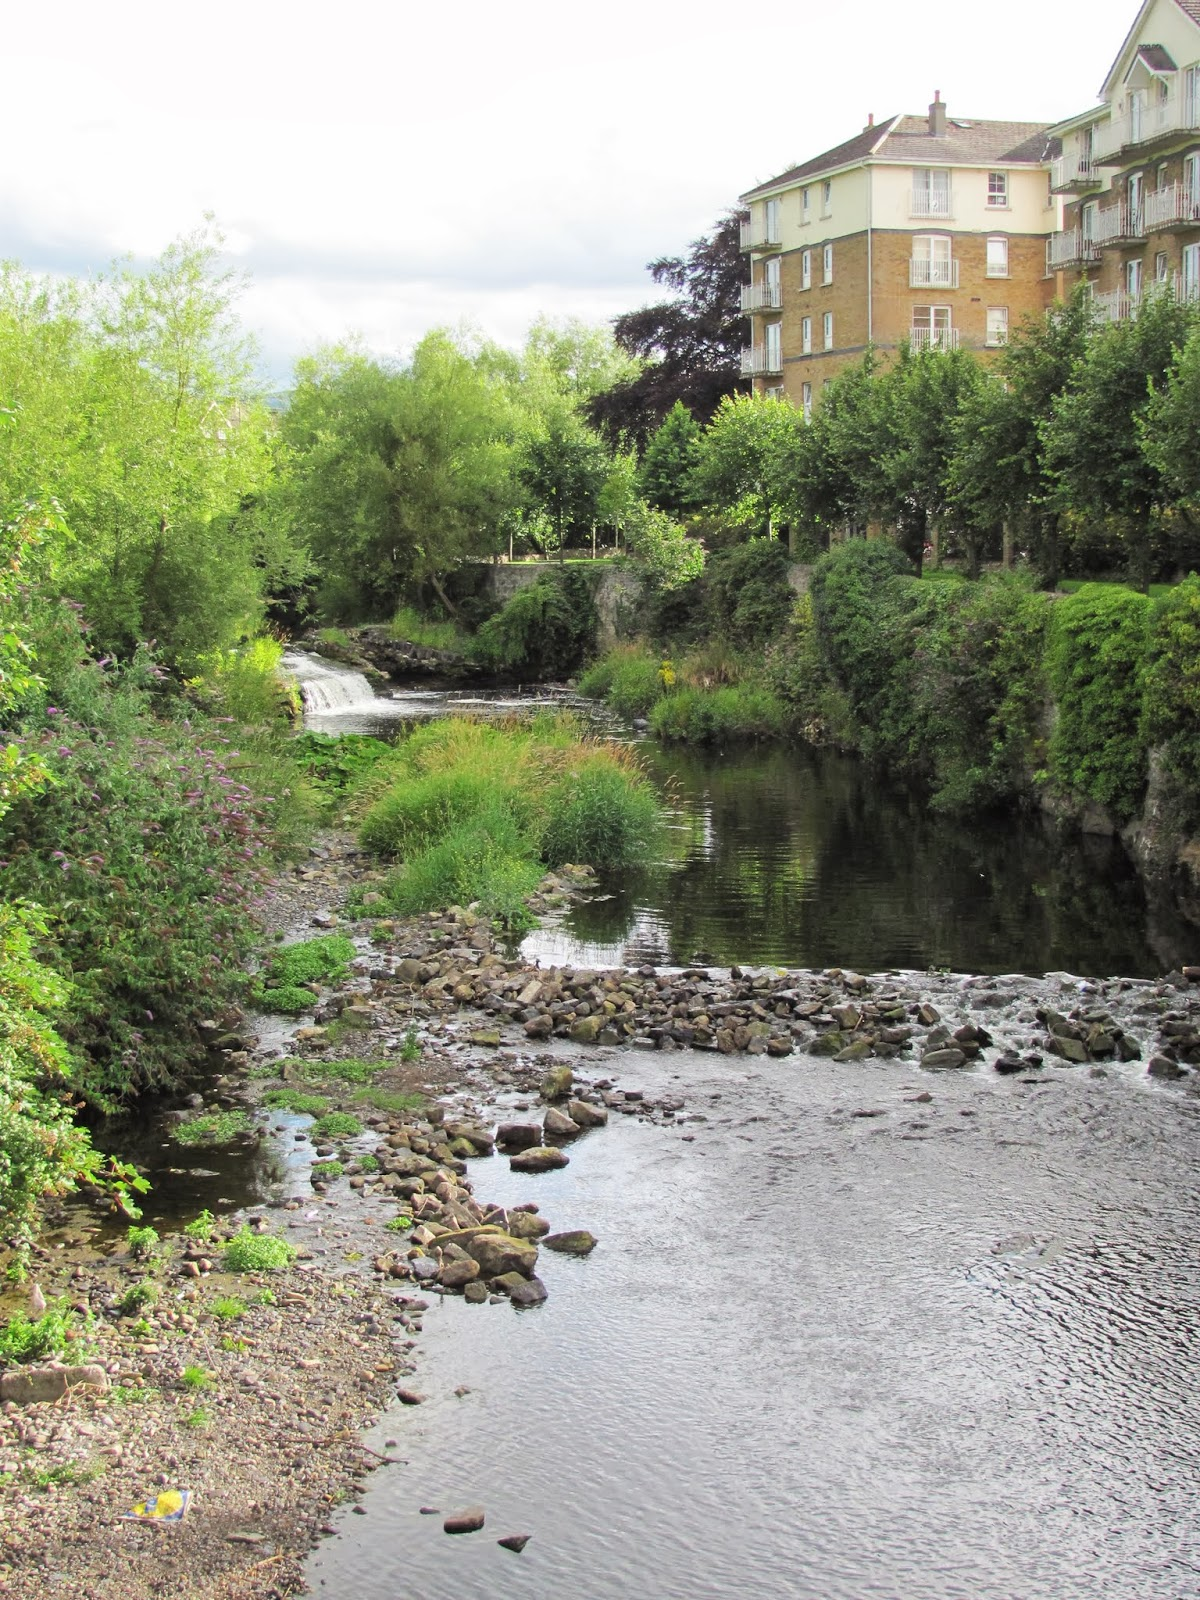 Apartment buildings are seen along a riffle on the River Dodder in Dublin, Ireland